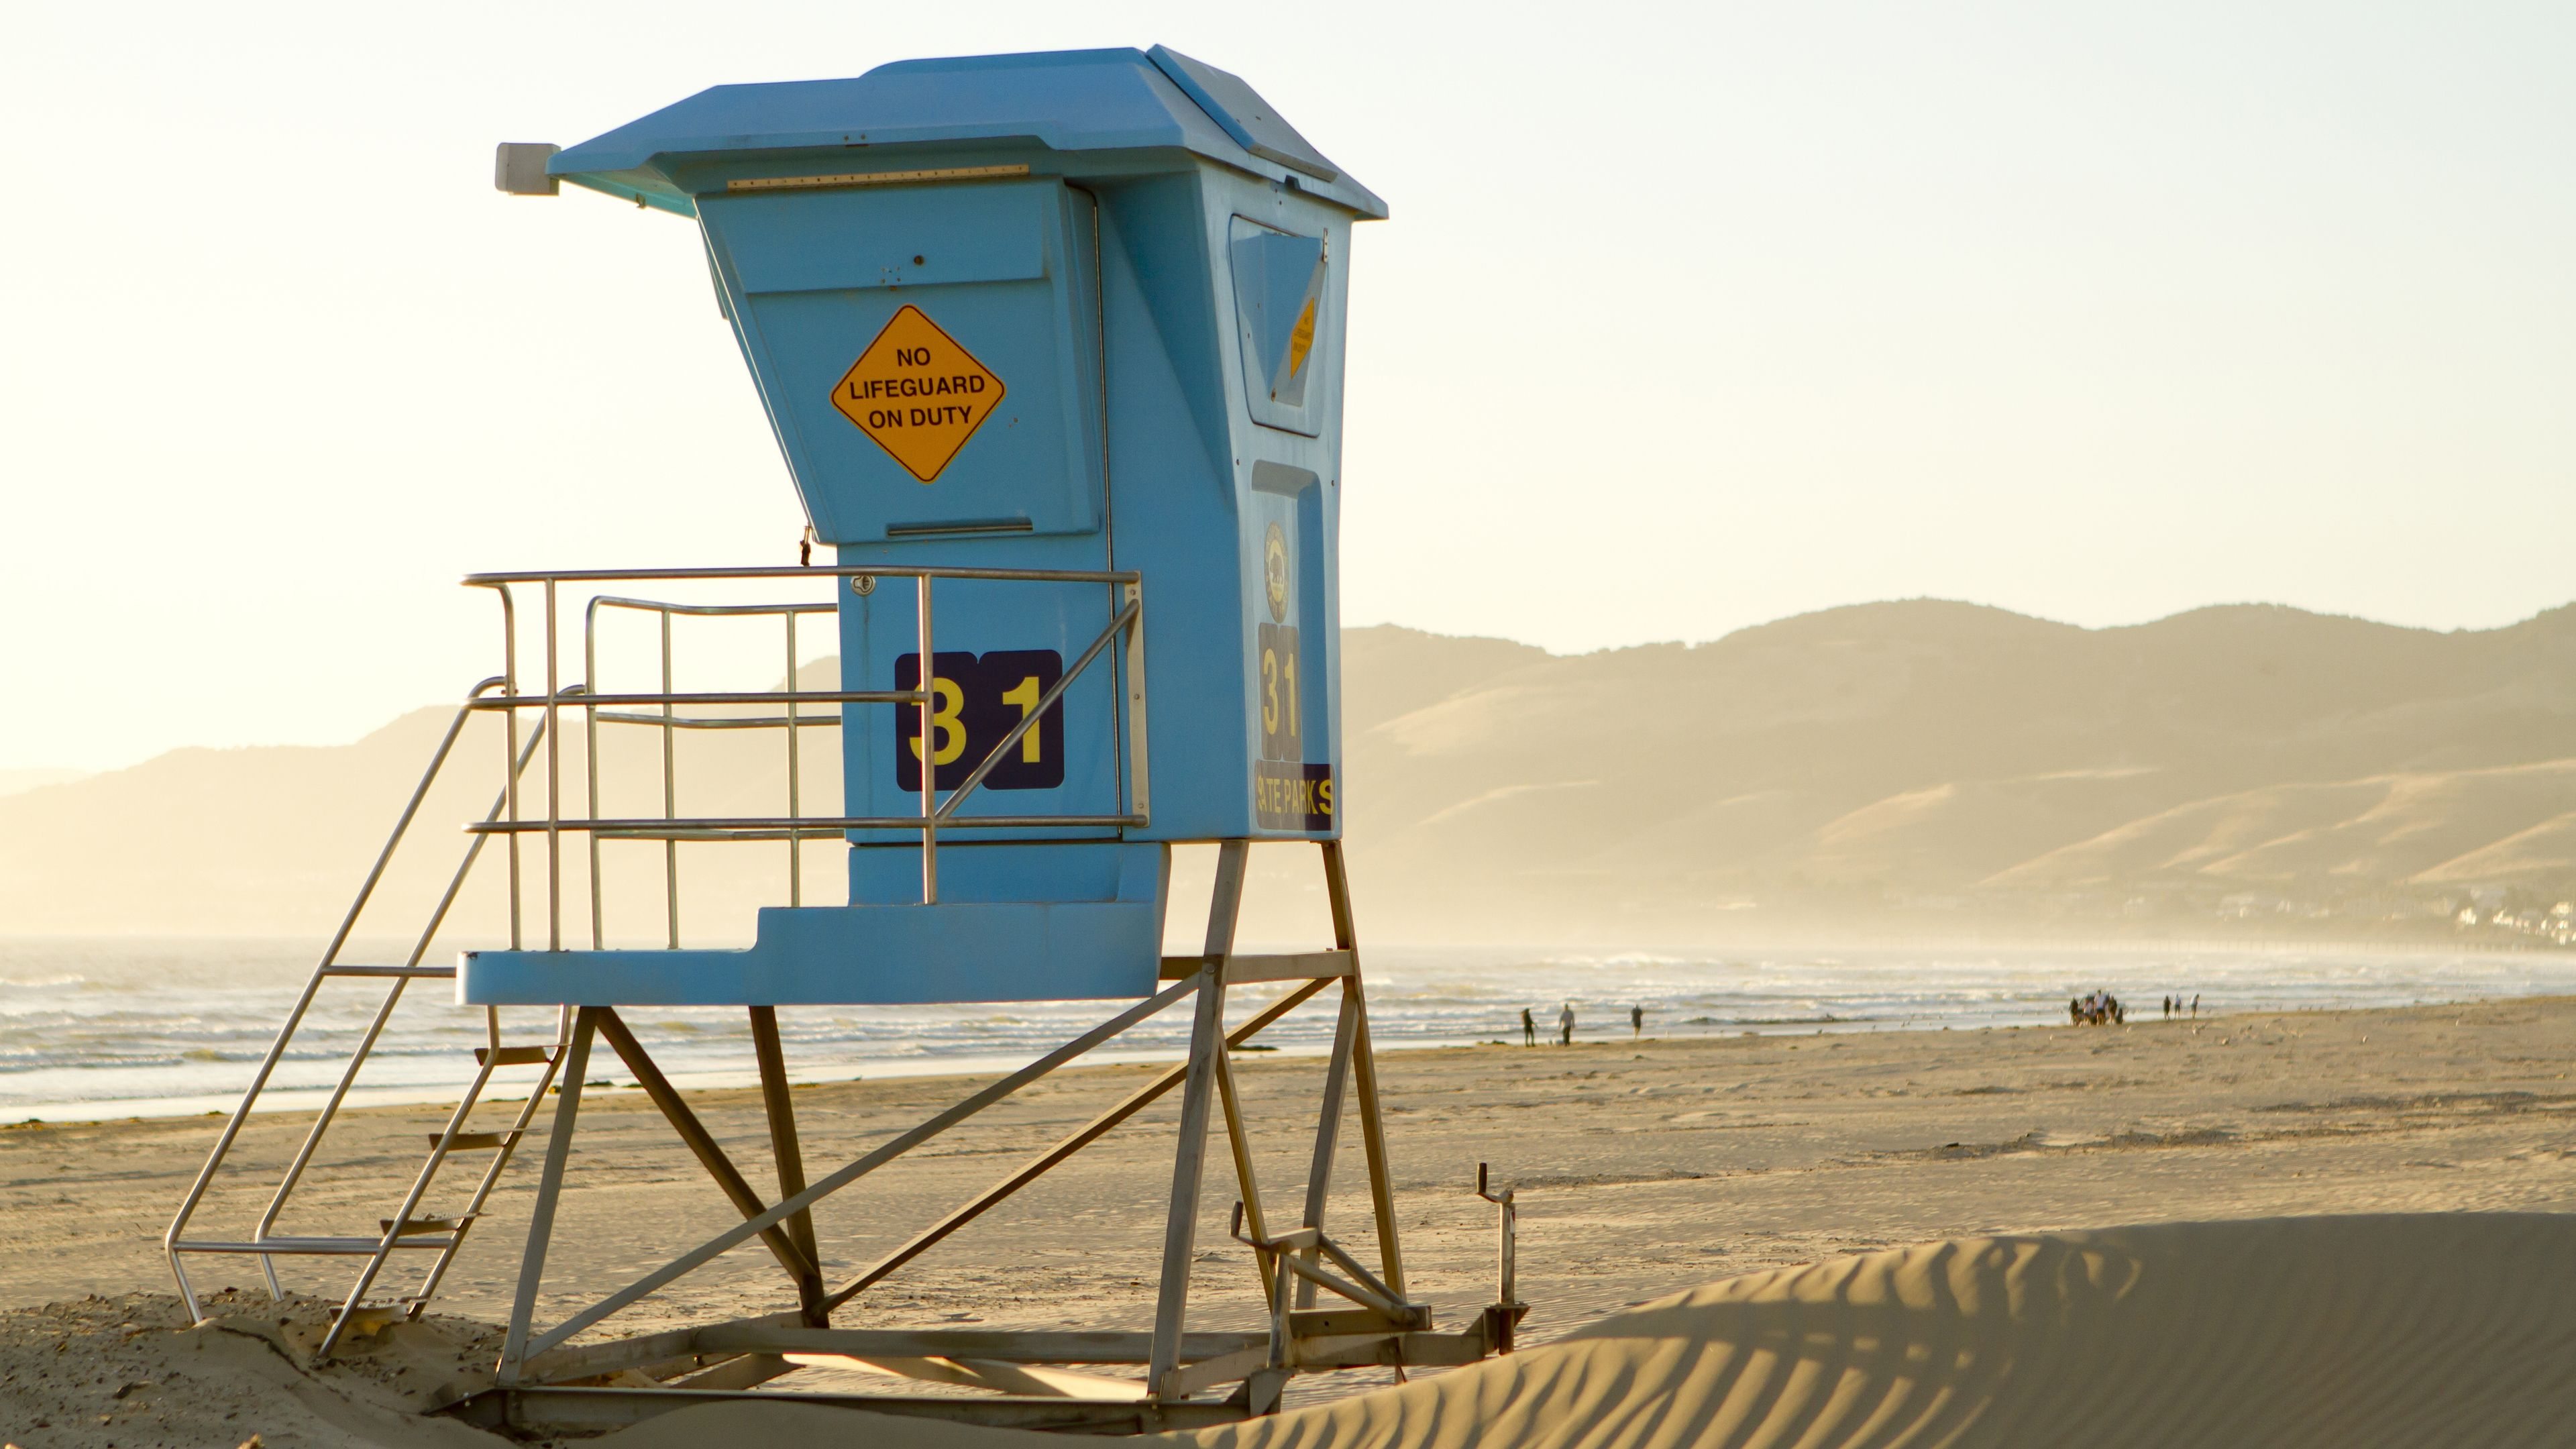 Lifeguard stand on beach at sunrise